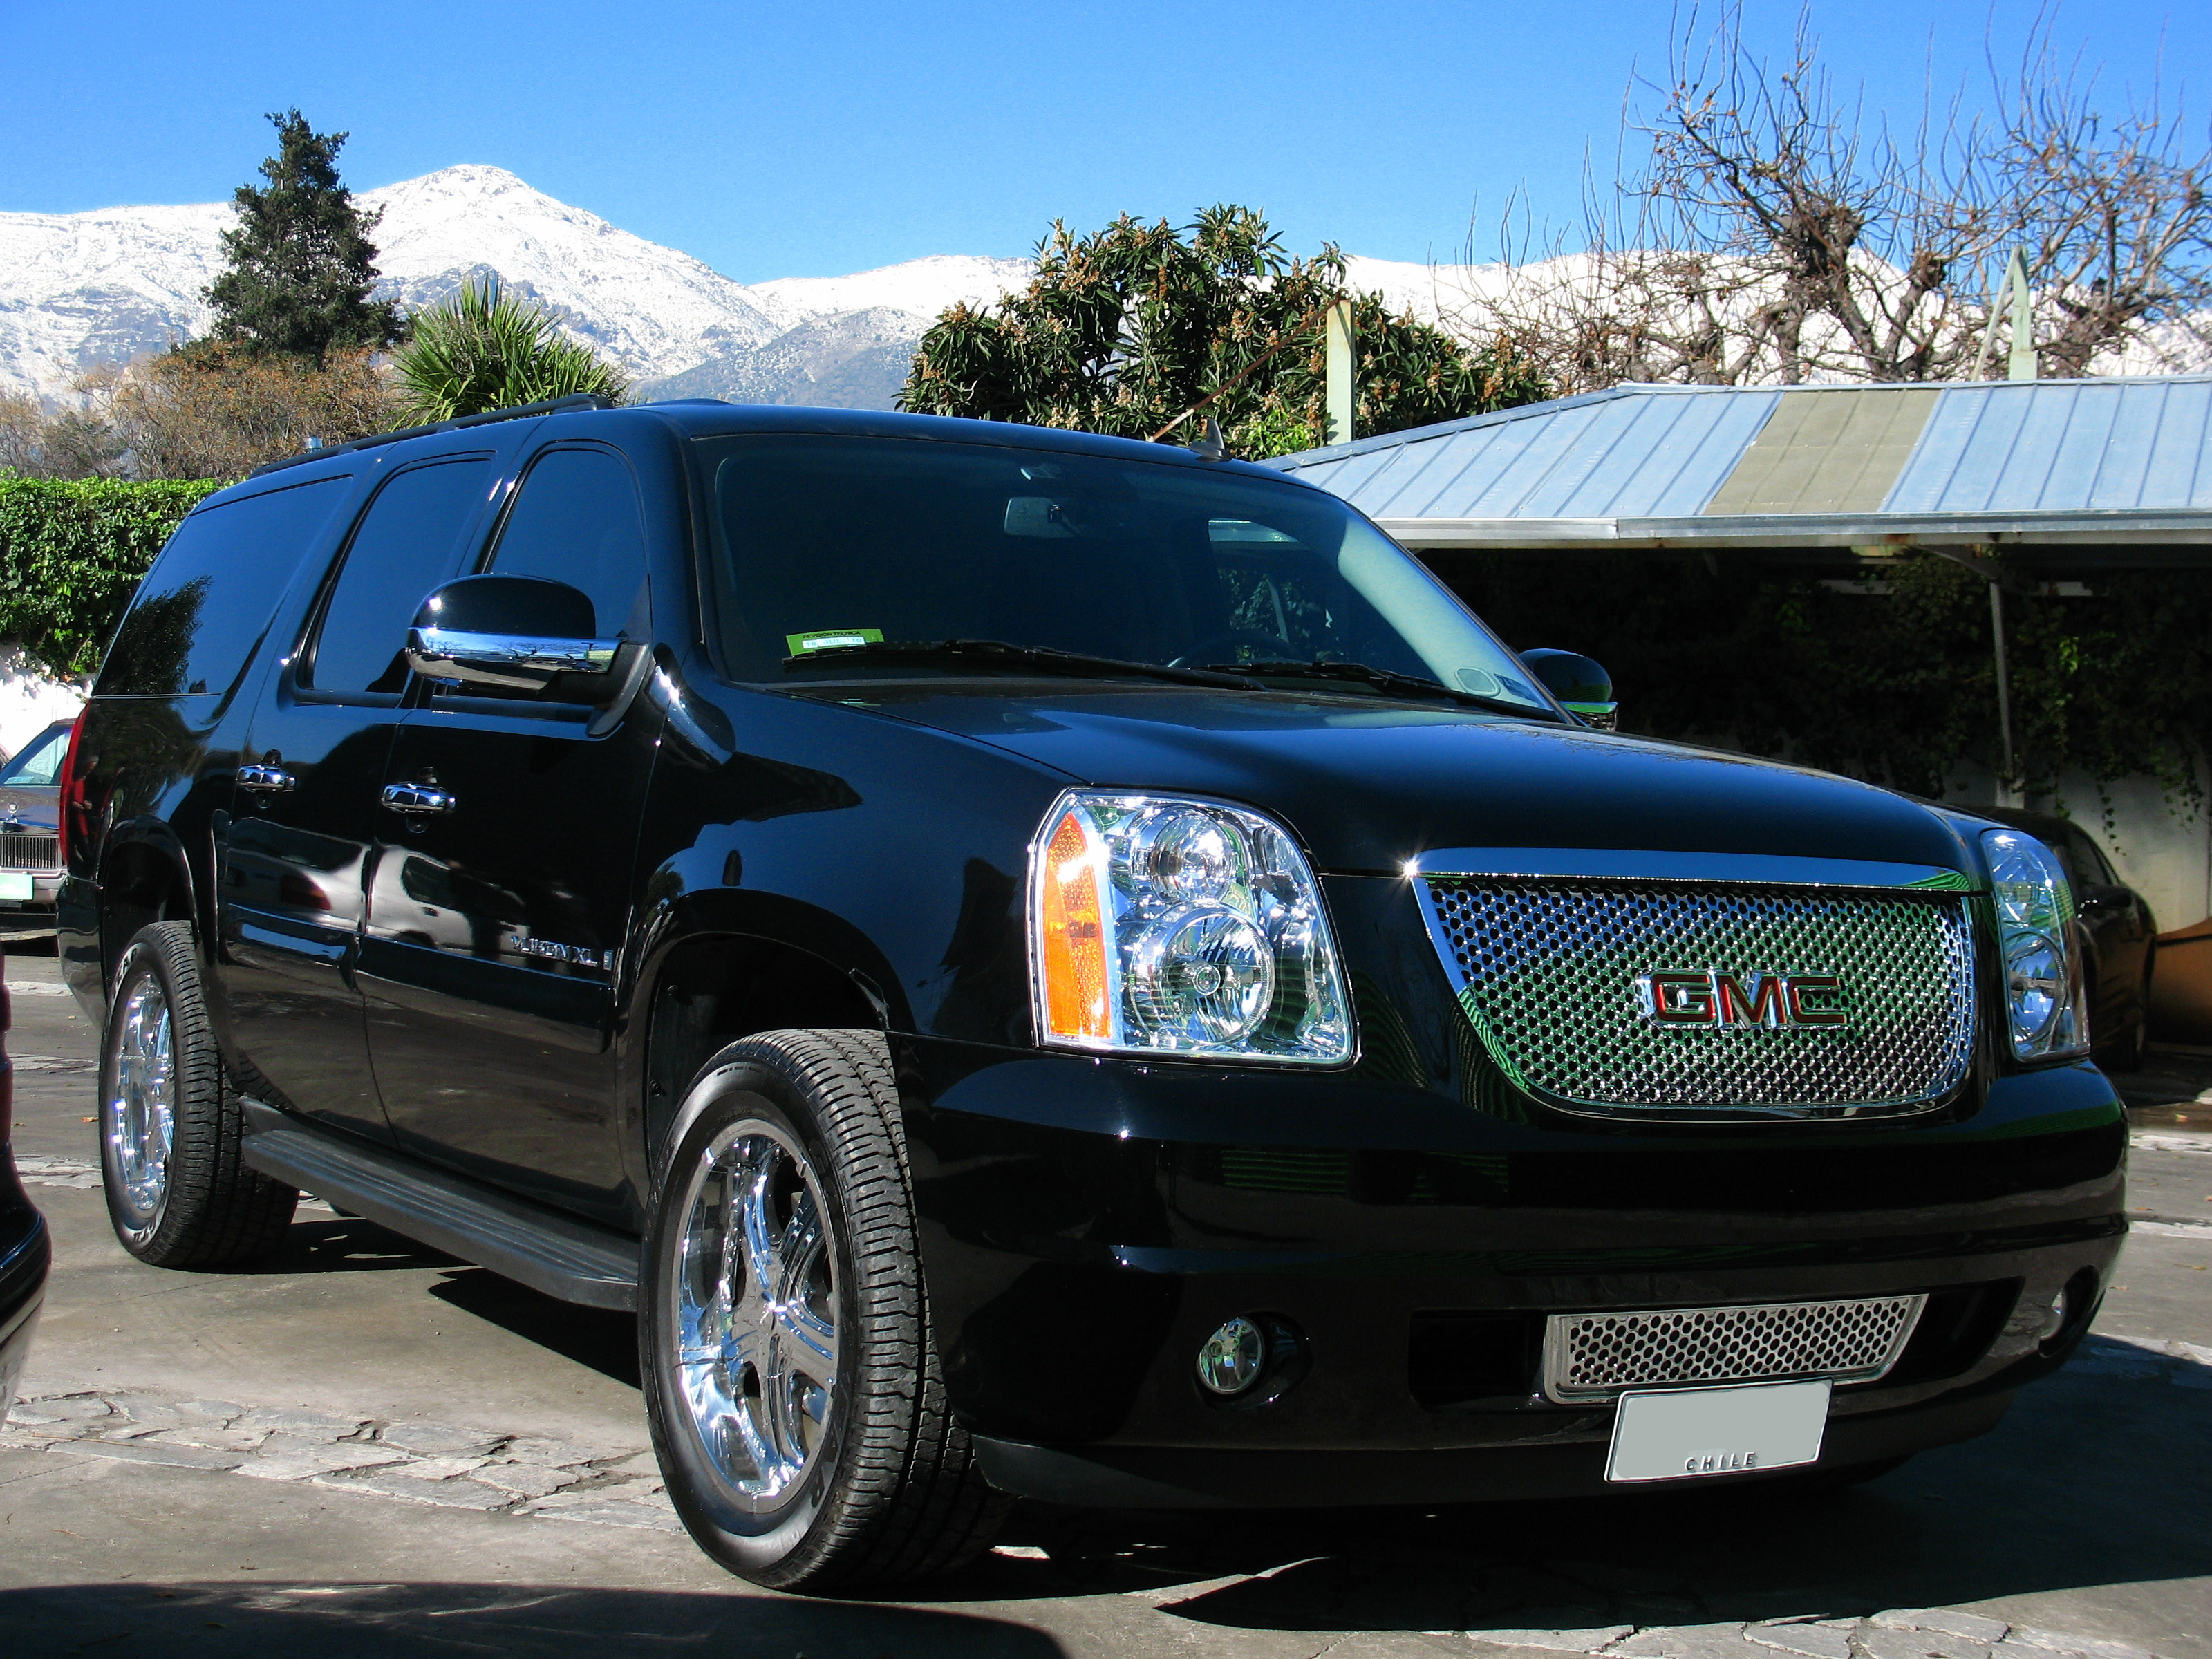 austin denali images and yukon img with houston tx to dad trip gmc on ideas traveling road